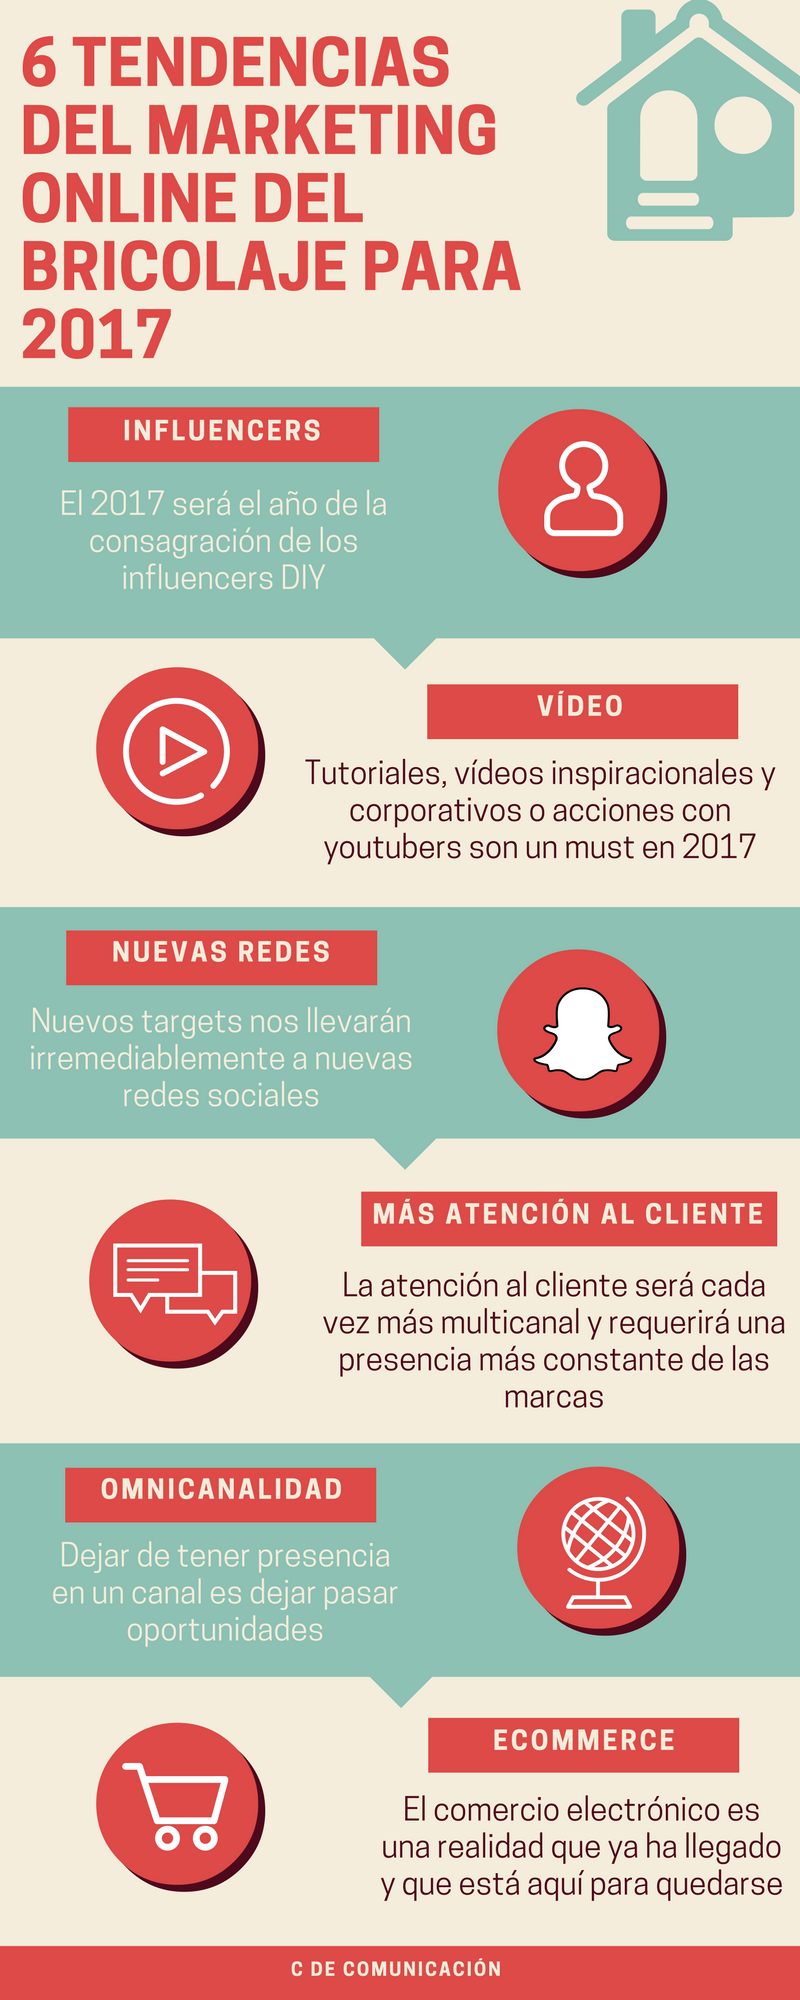 6-tendenciasdel-marketing-online-del-bricolaje-1